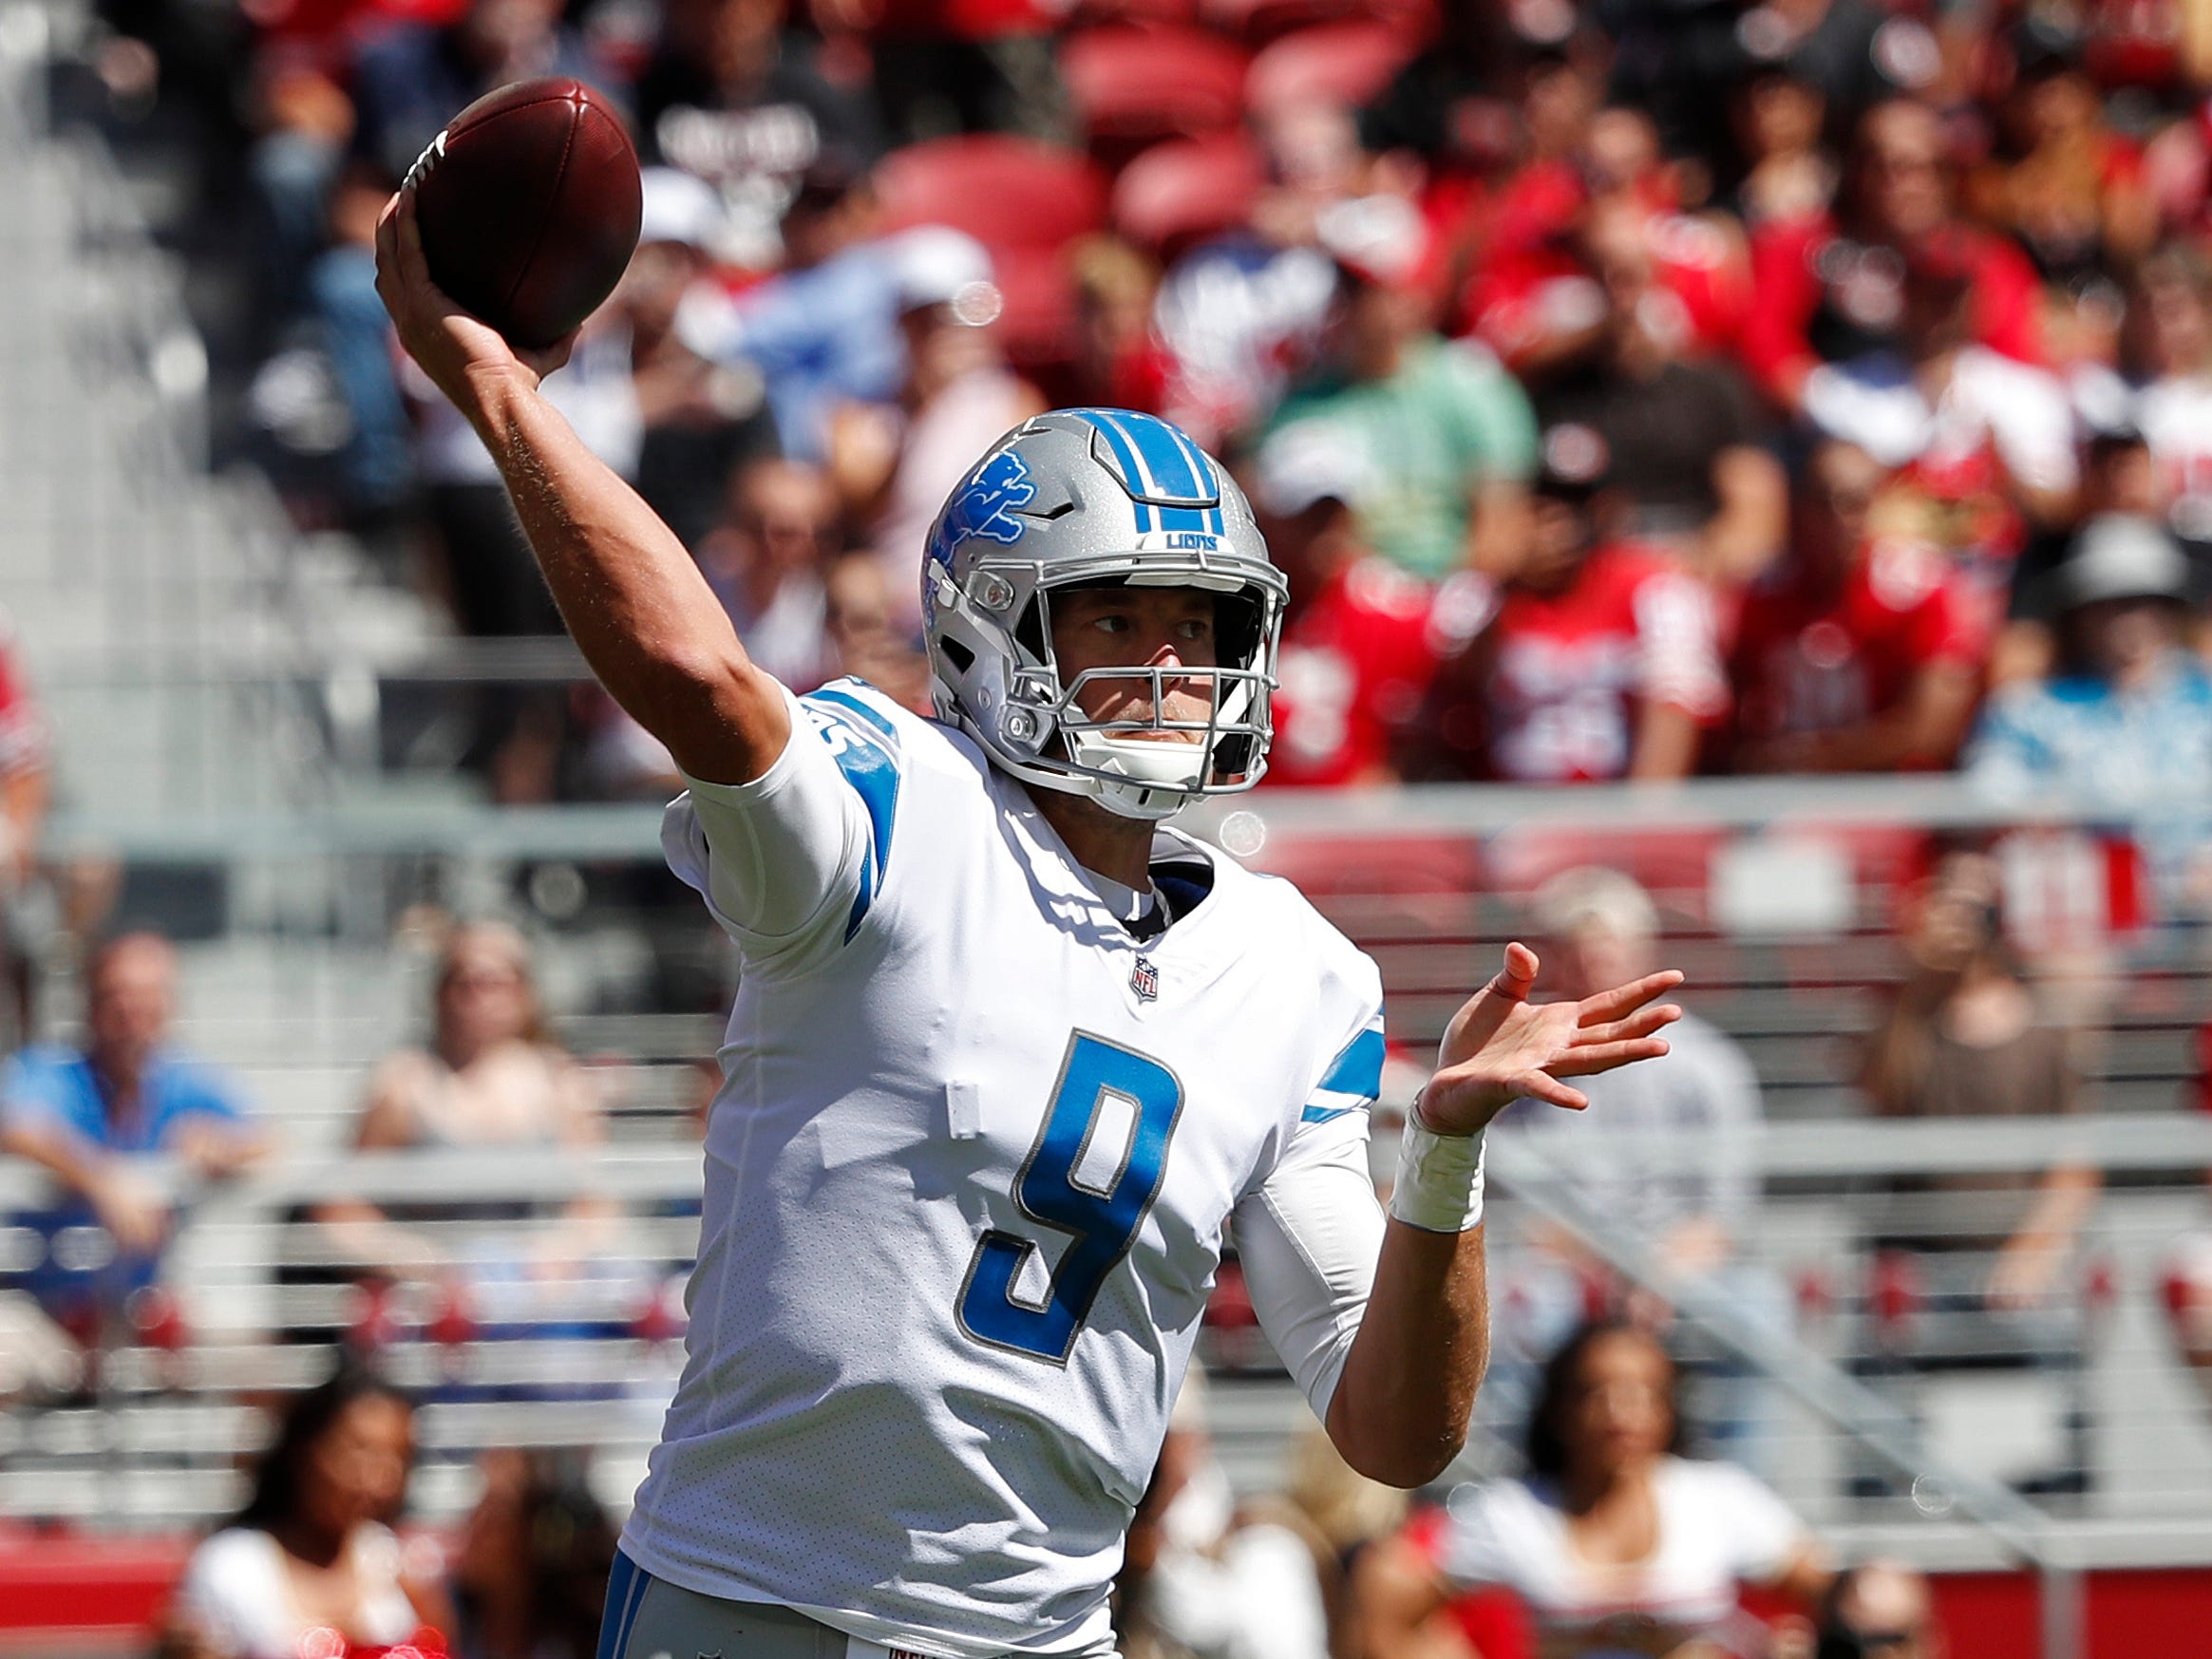 Detroit Lions quarterback Matthew Stafford throws during the first half of an NFL football game against the San Francisco 49ers in Santa Clara, Calif., Sunday, Sept. 16, 2018.